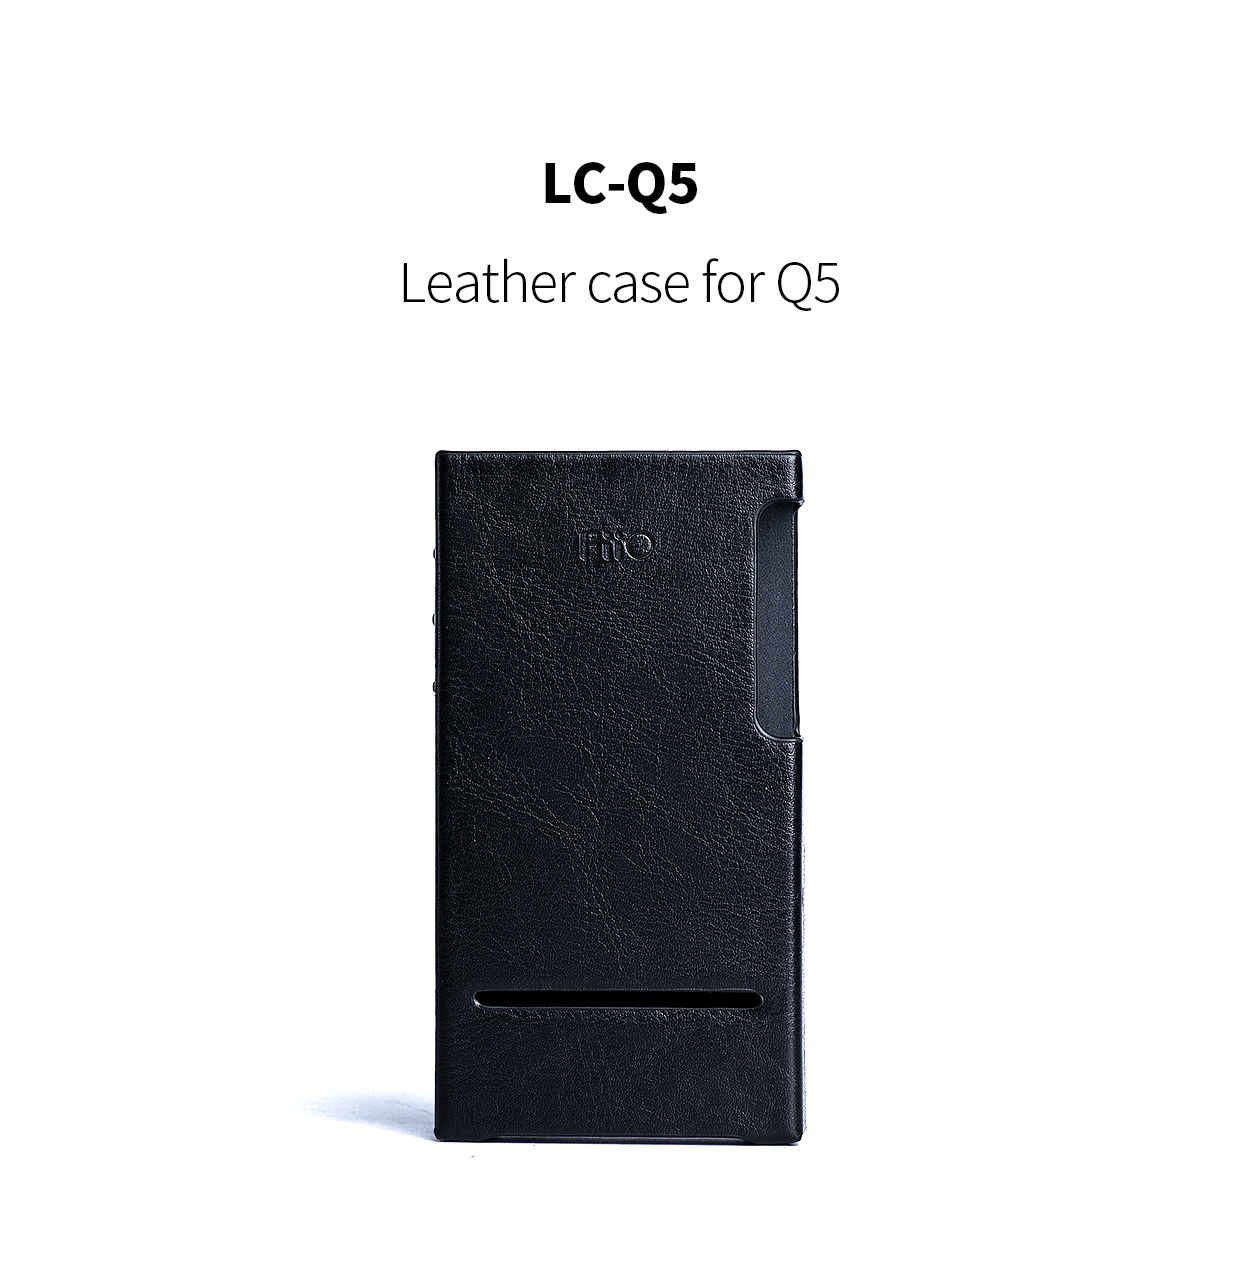 Bao đựng FiiO LC-Q5 Leather Case